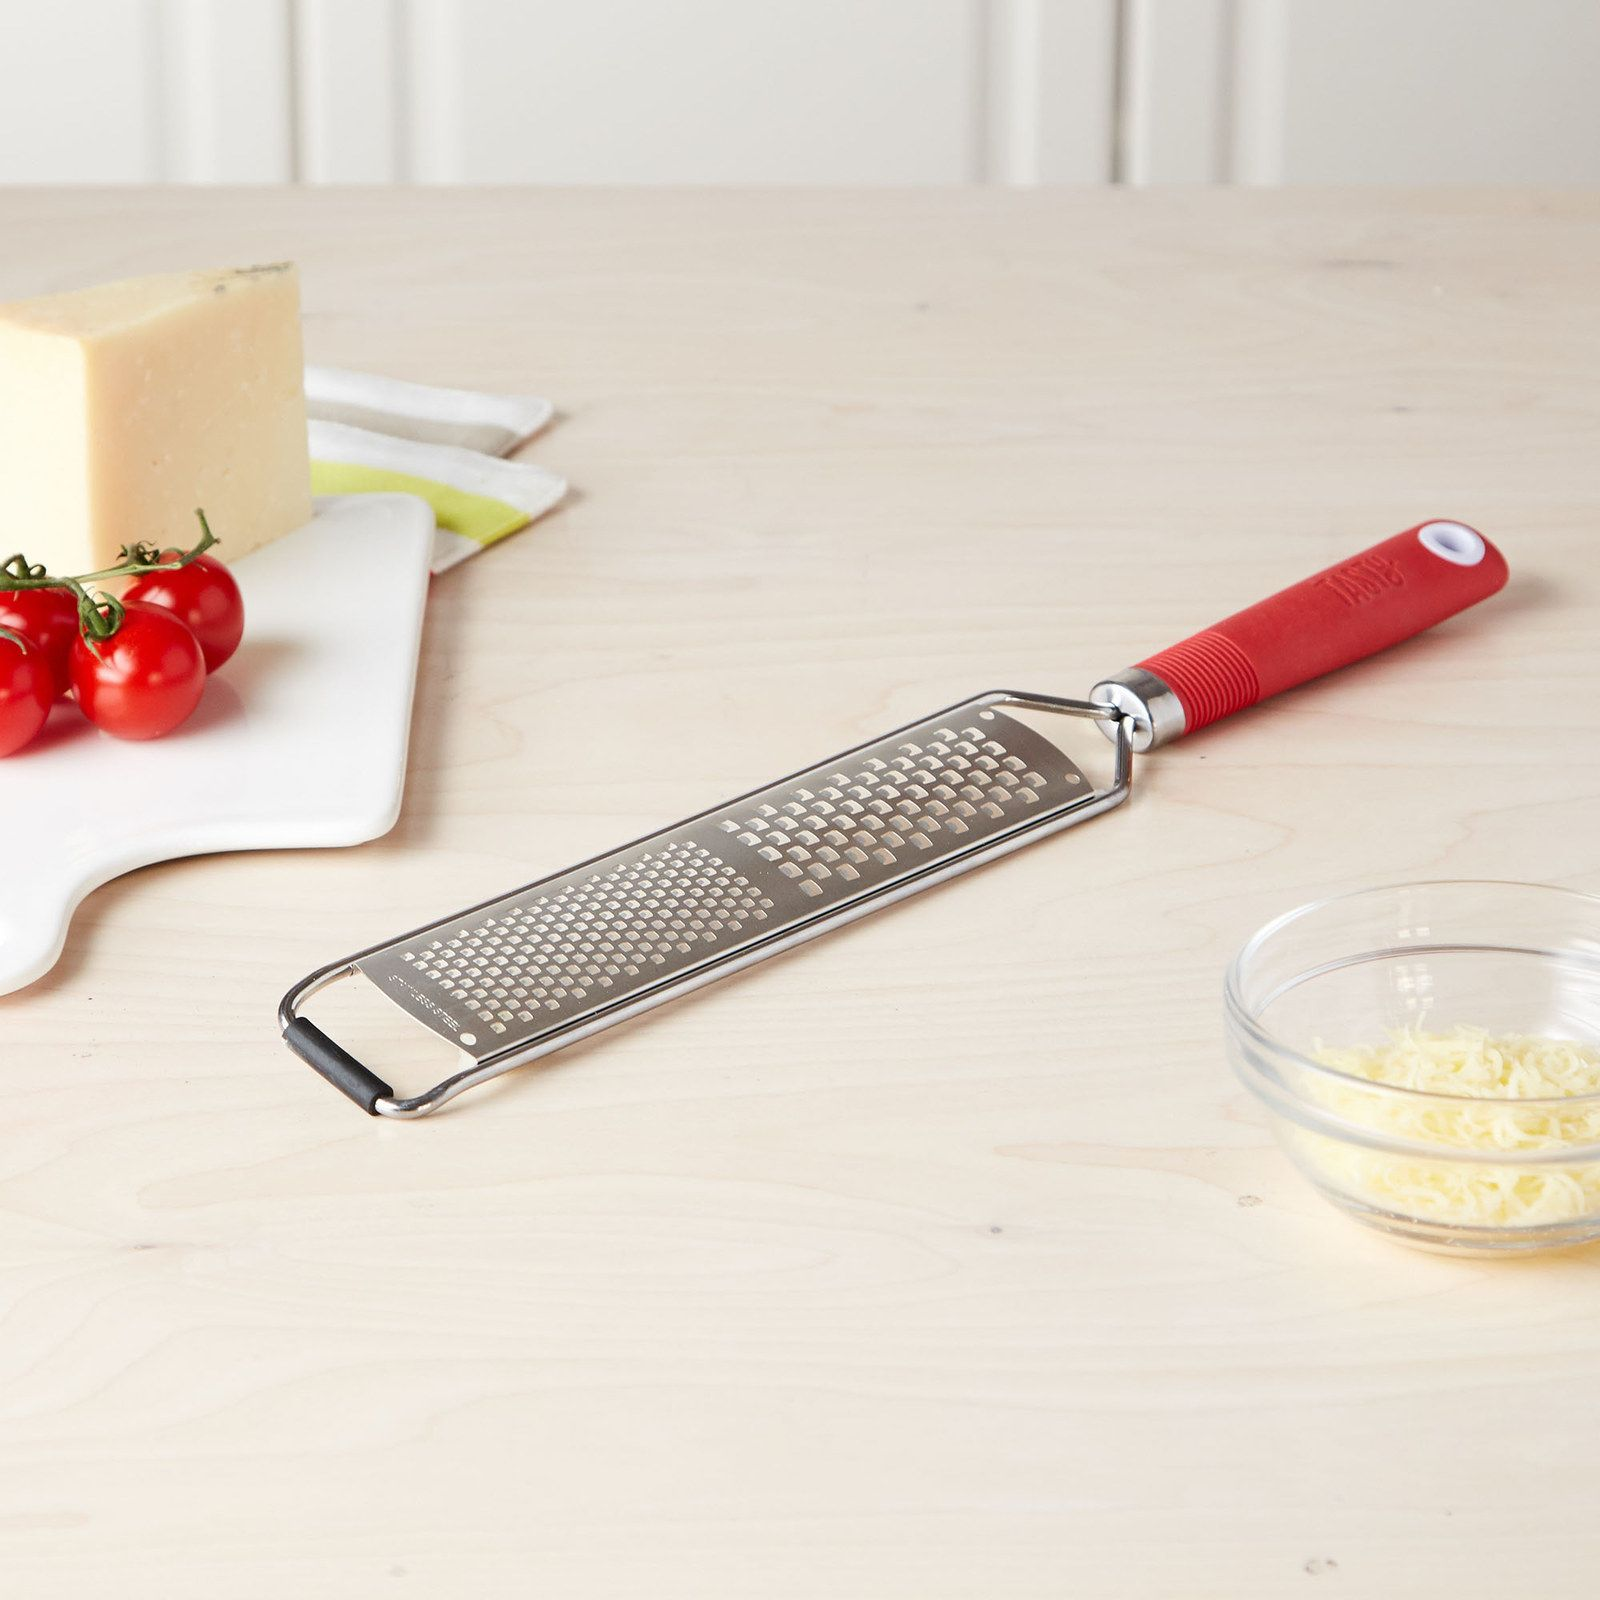 A handheld grater, so your friend can painlessly shred cheese, chocolate, or whatever else their heart desires with minimal effort.